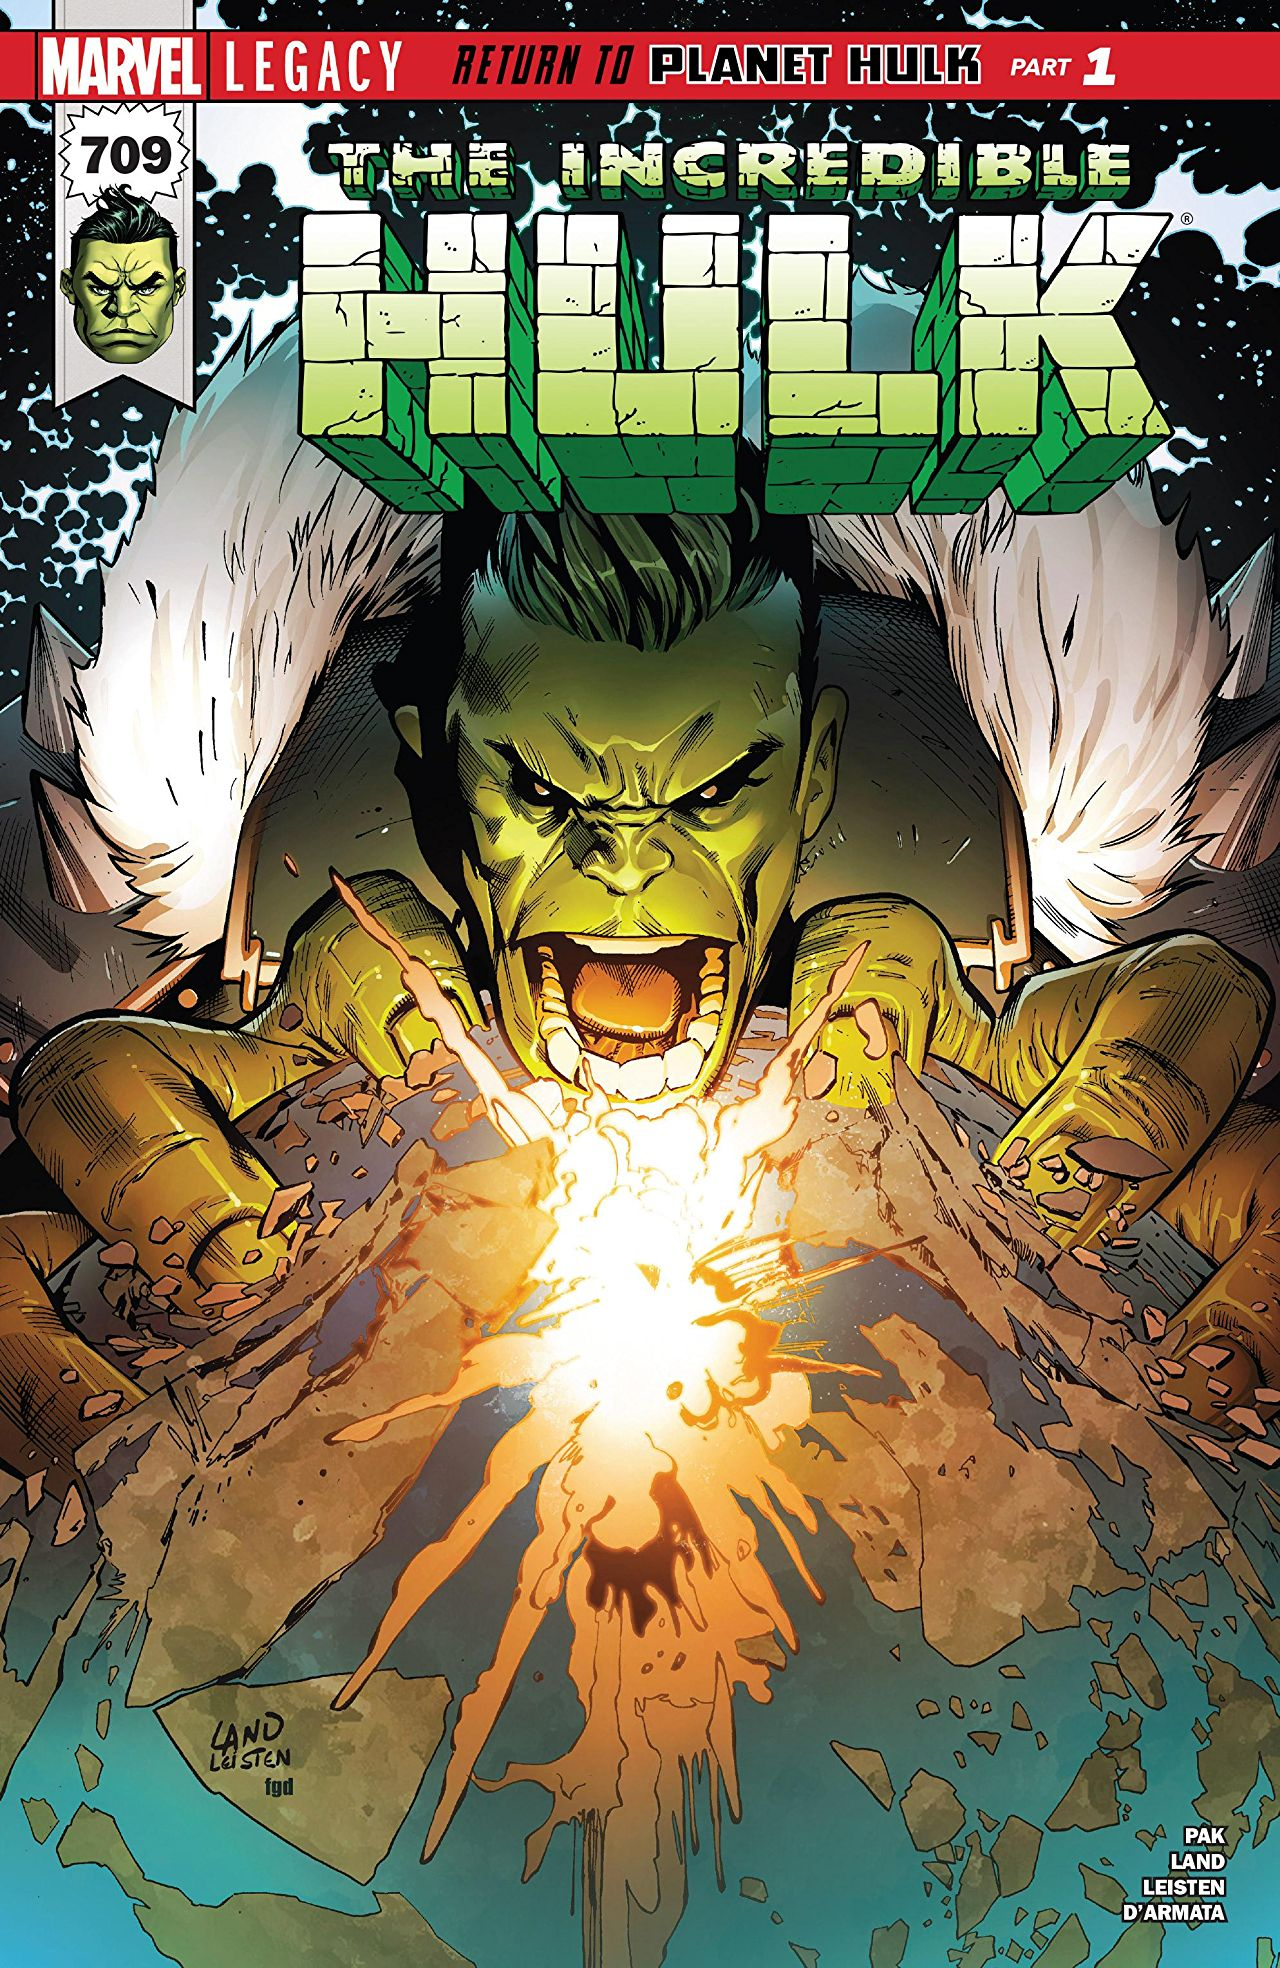 The Incredible Hulk 709 - RETURN TO PLANET HULK